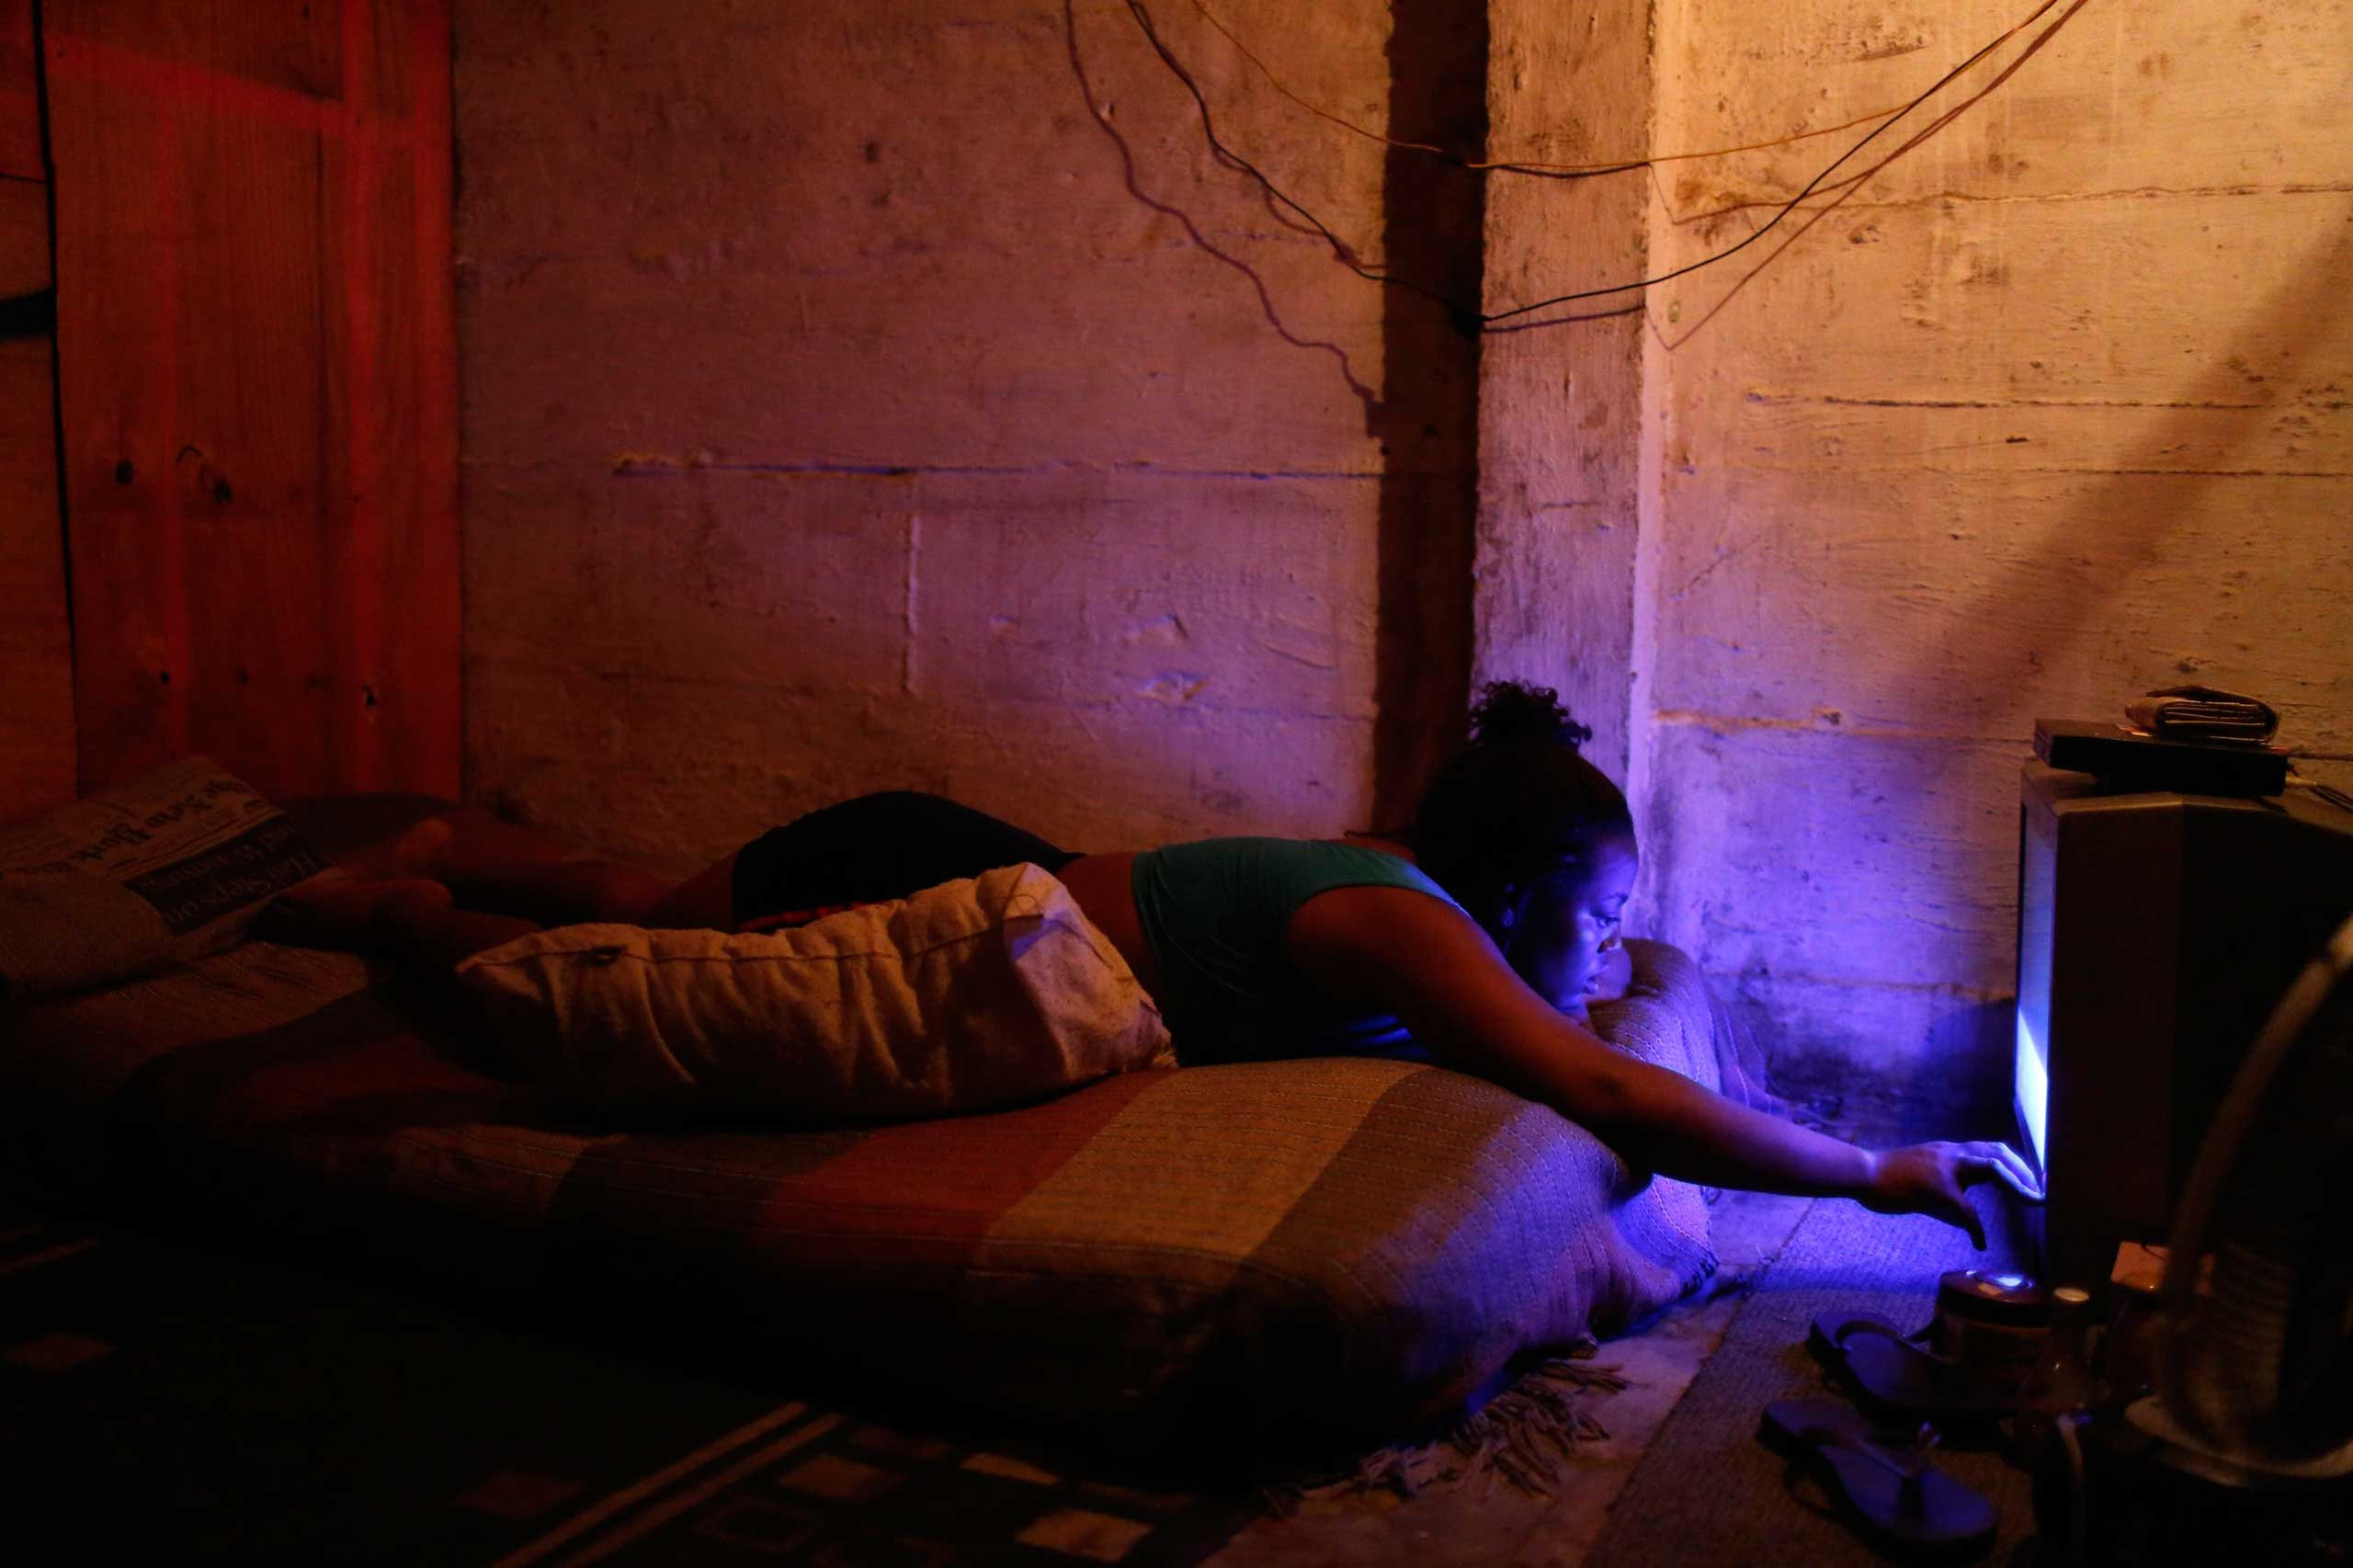 Oct. 17, 2014. A woman watches television inside her makeshift home at the Nova Tuffy slum in an abandoned factory in Rio de Janeiro. 1,800 families have been living inside the factory since March, with poor sanitation services and the fear of eviction.